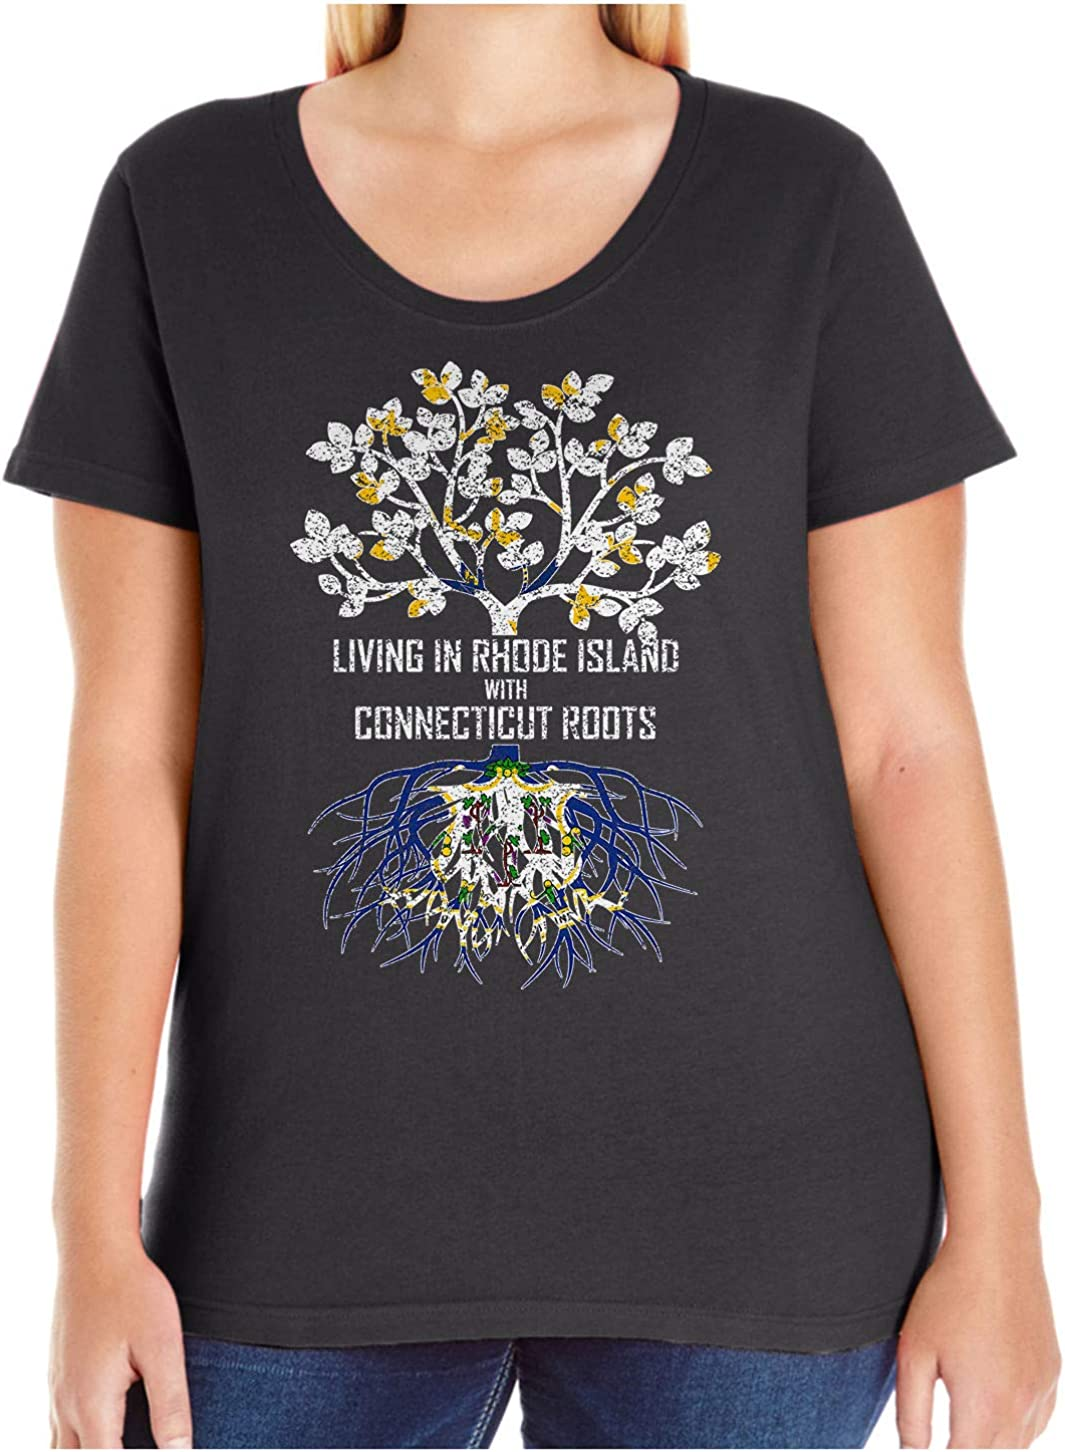 HARD EDGE DESIGN Women's Living in Rhode Island with Connecticut Roots T-Shirt